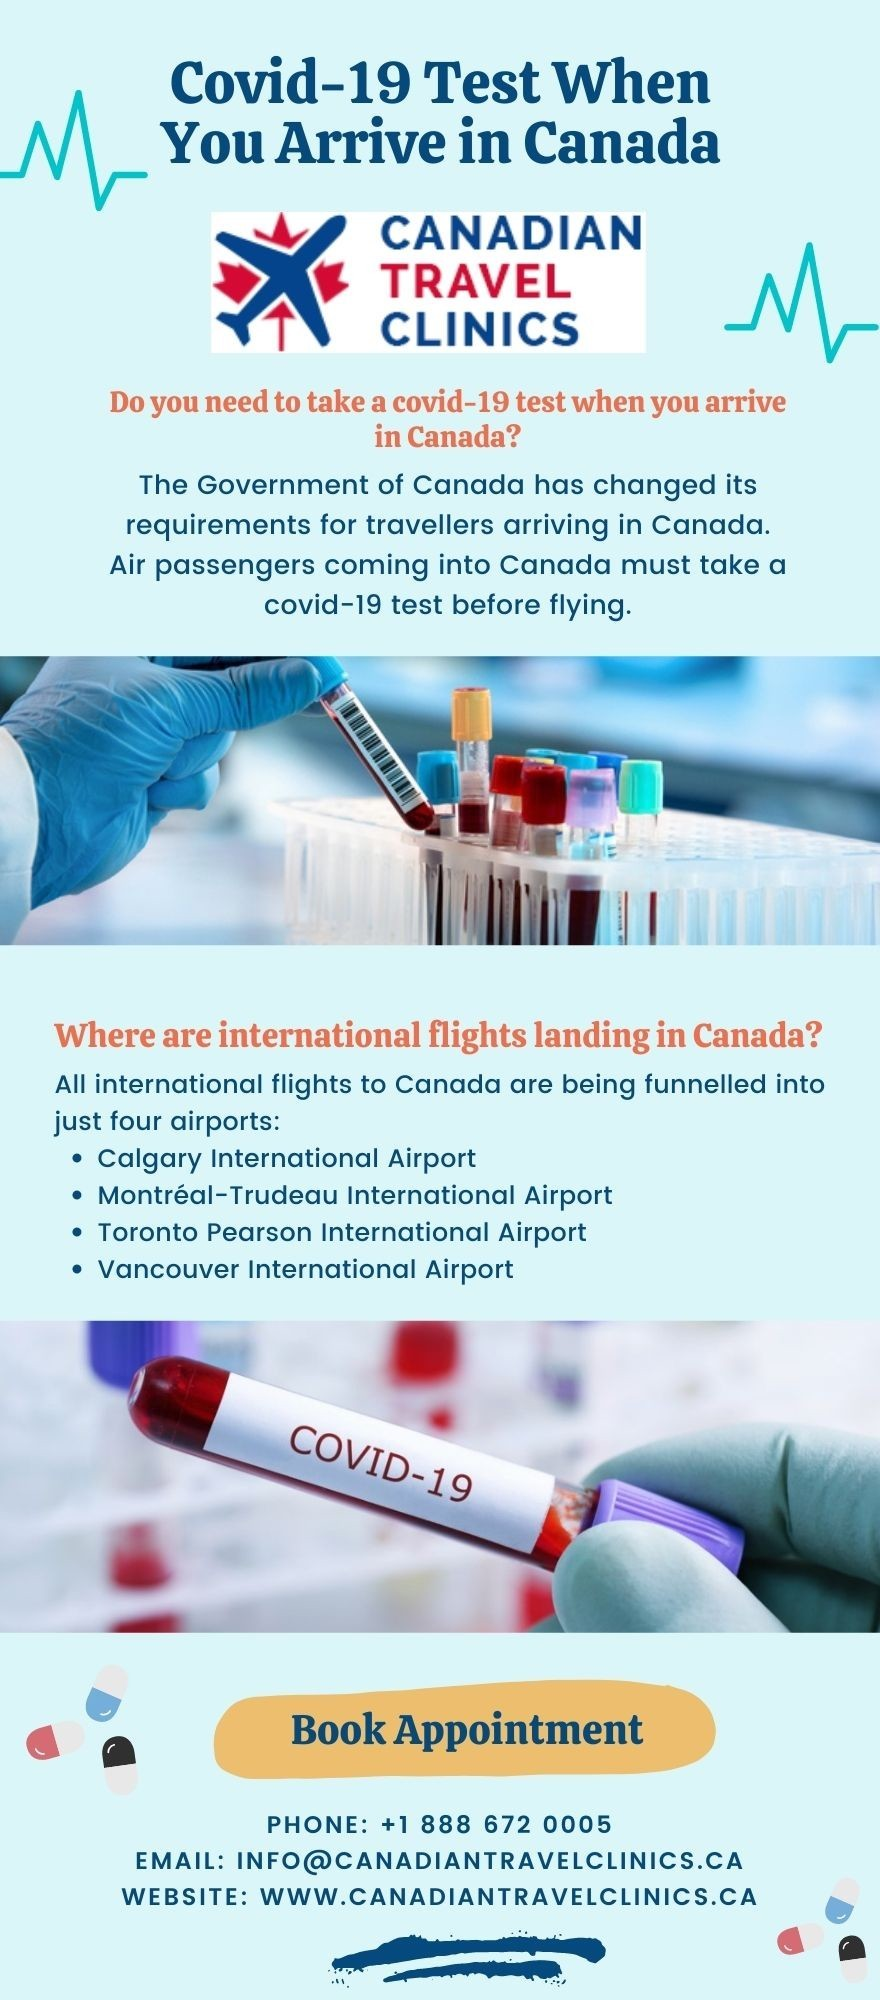 Covid-19 Test When You Arrive in Canada - Canadian Travel Clinics